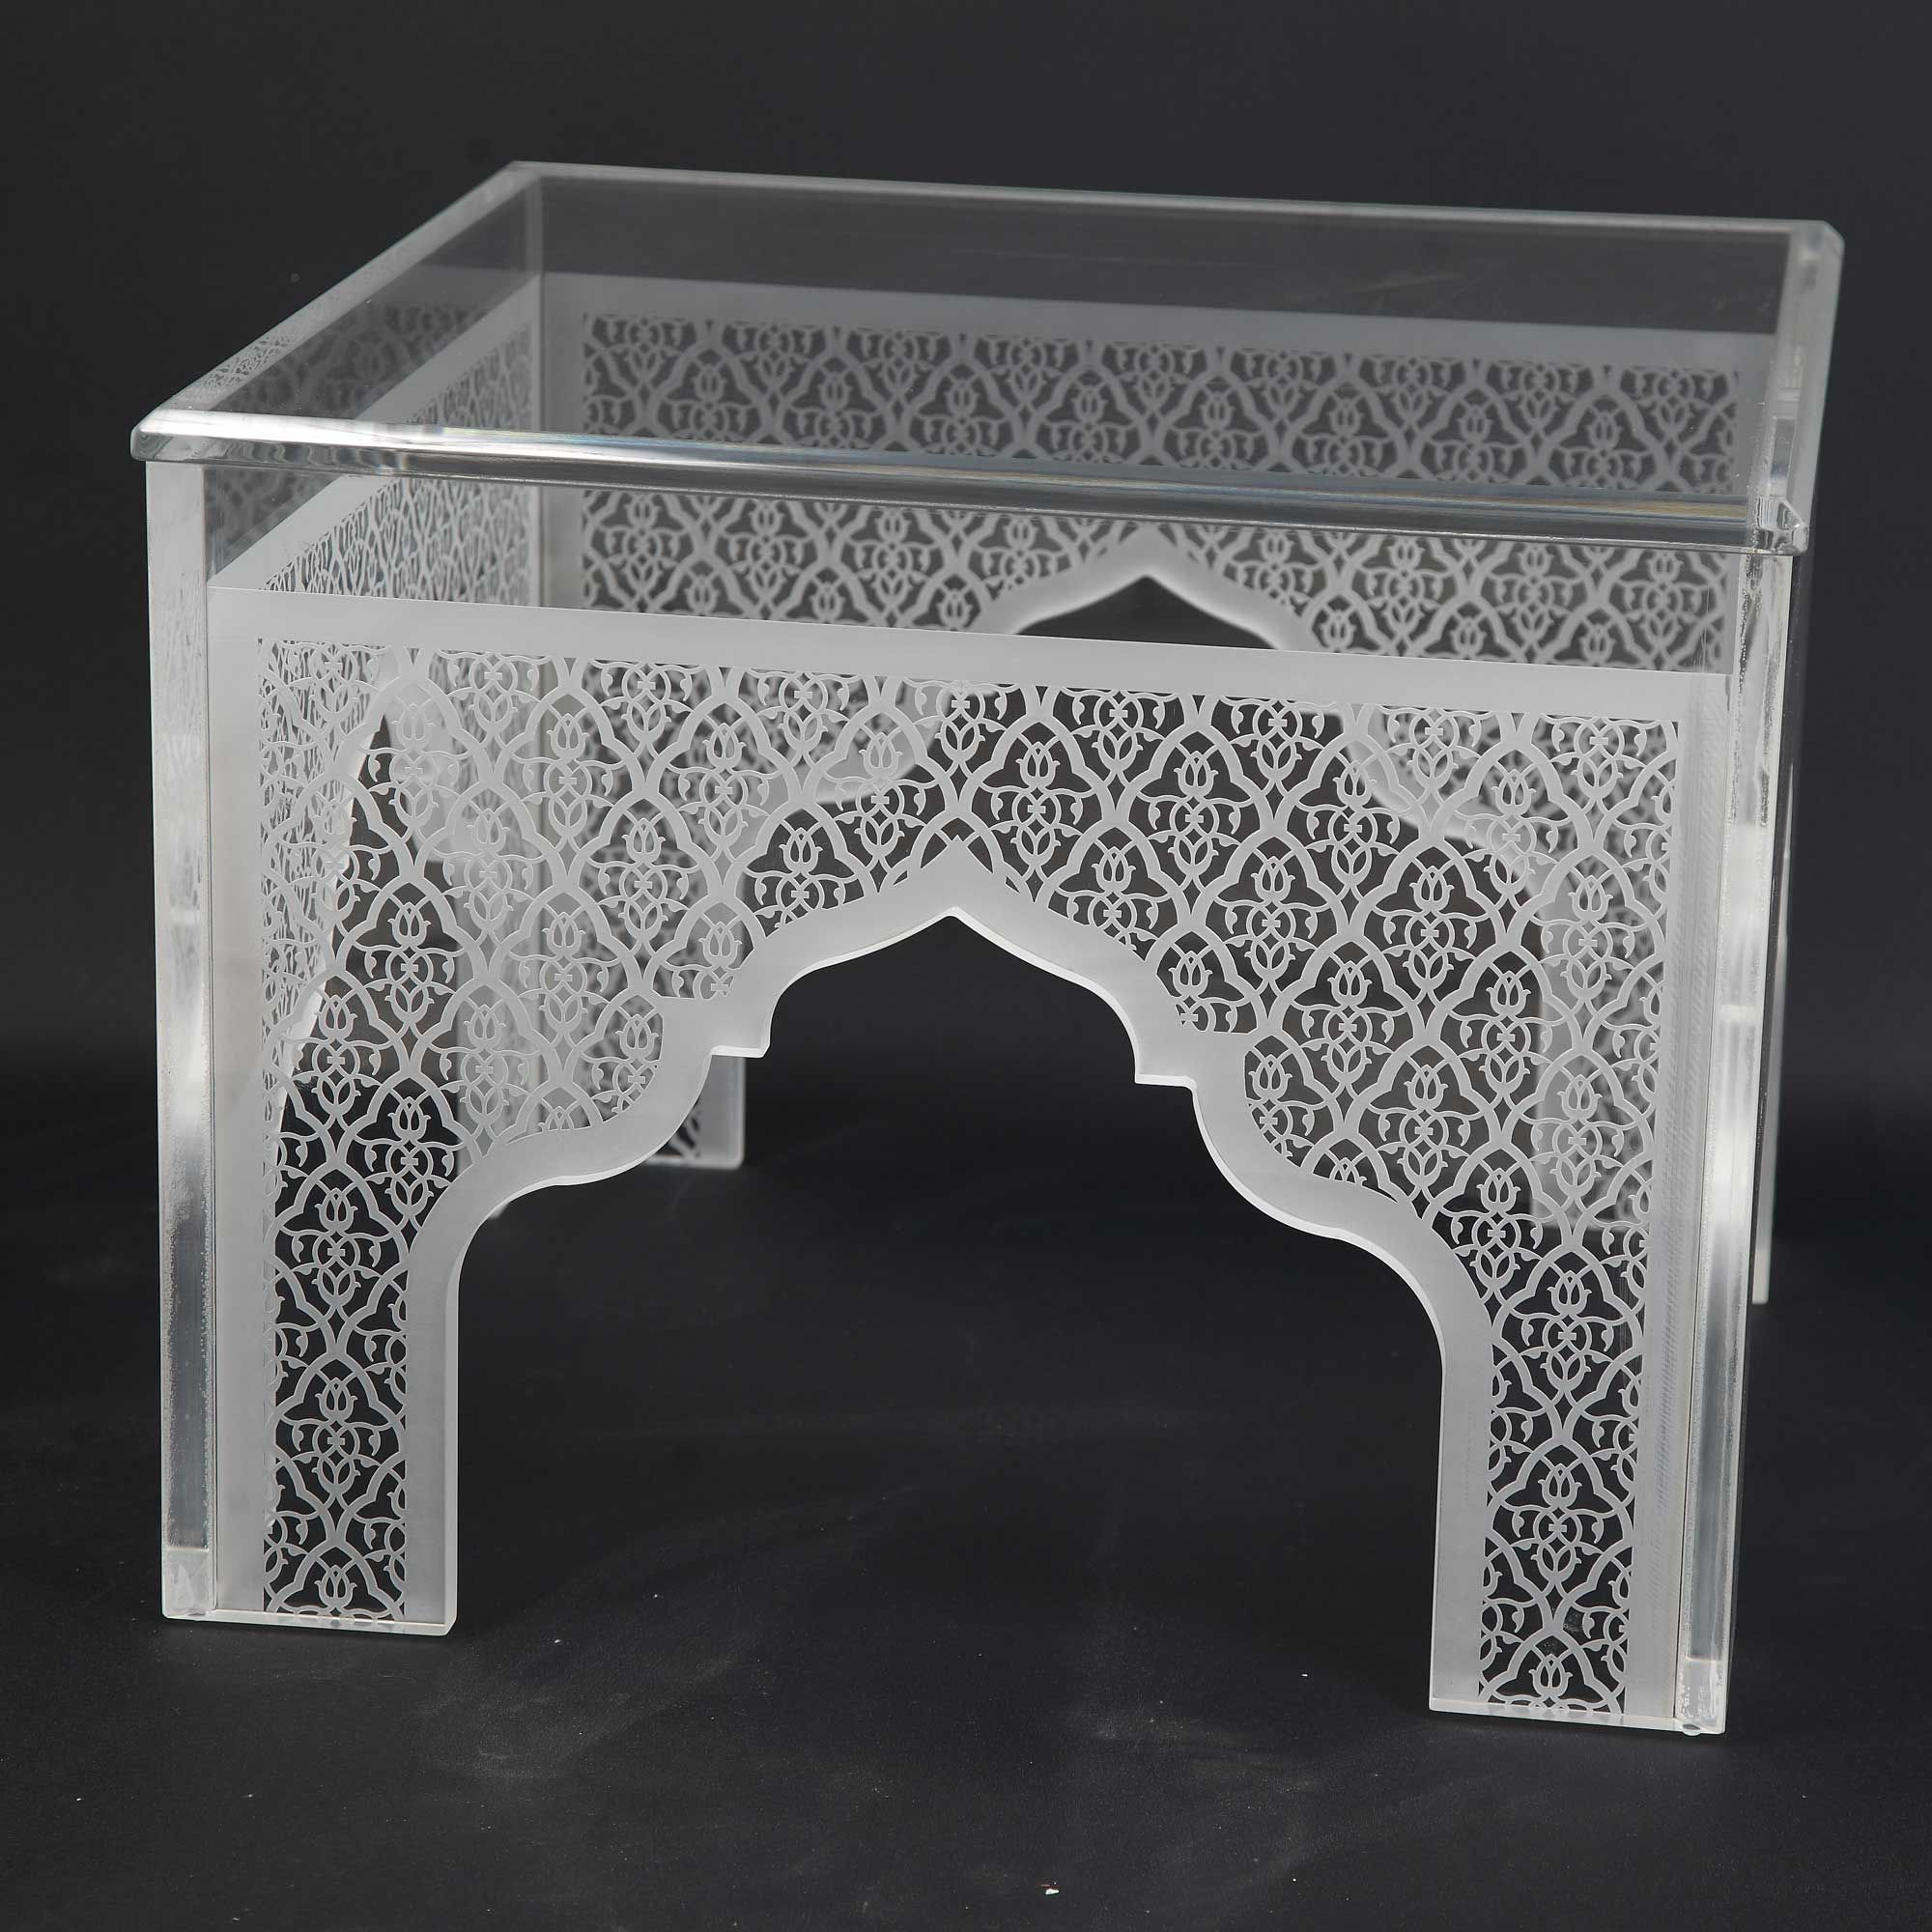 Table Basse Plexiglas Fly Best Plexi Low Table Designed By Zaman Designs To Be